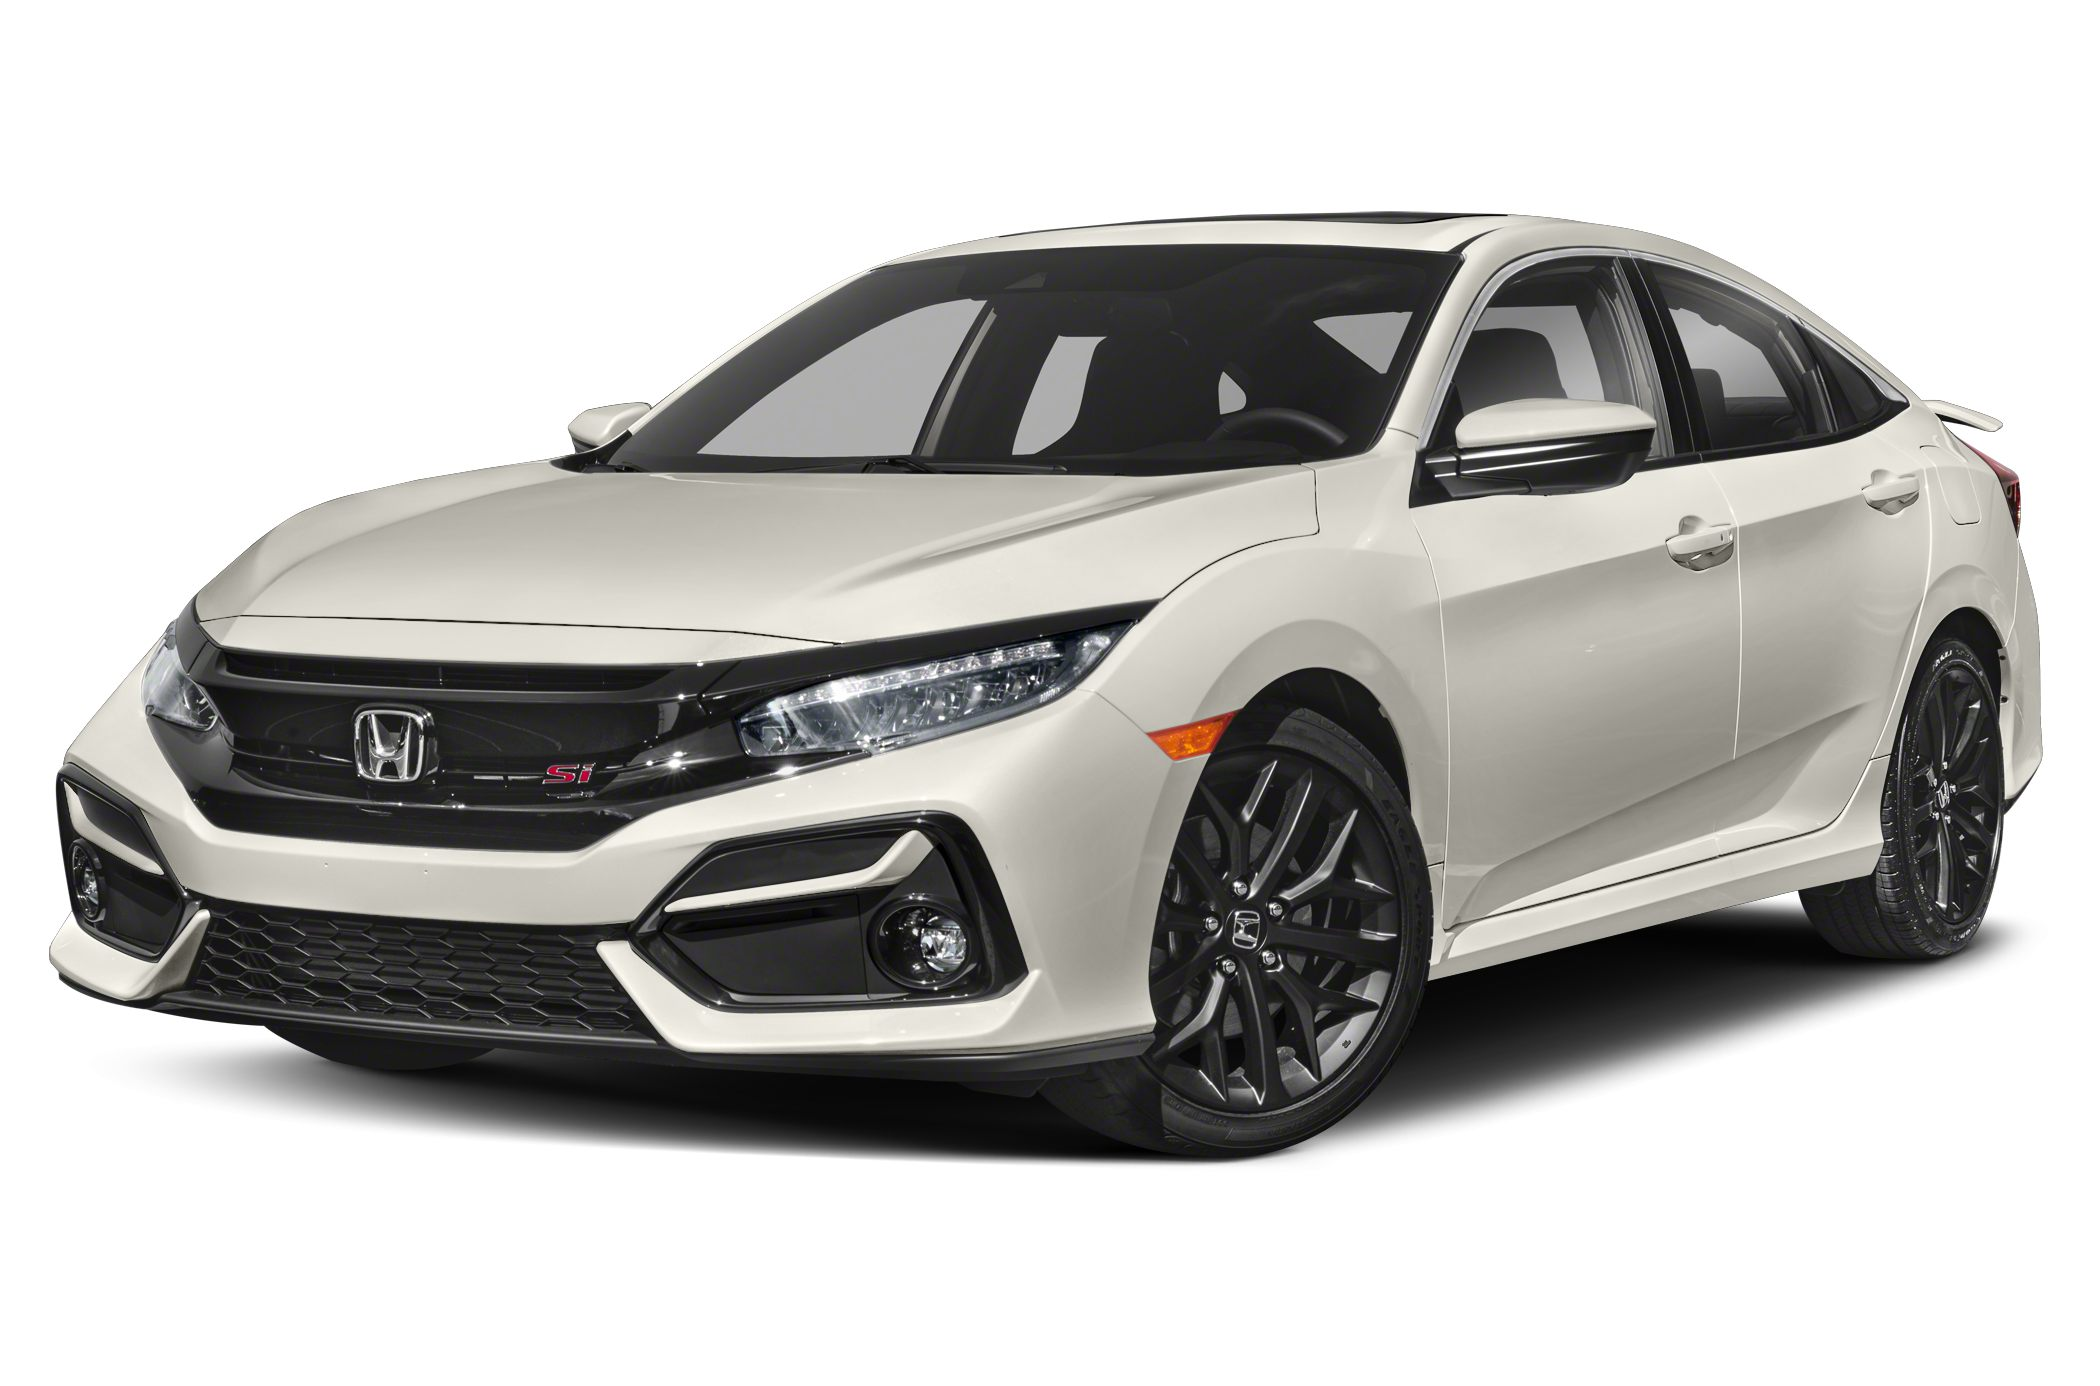 2020 Honda Civic Si Base W Summer Tires 4dr Sedan Specs And Prices